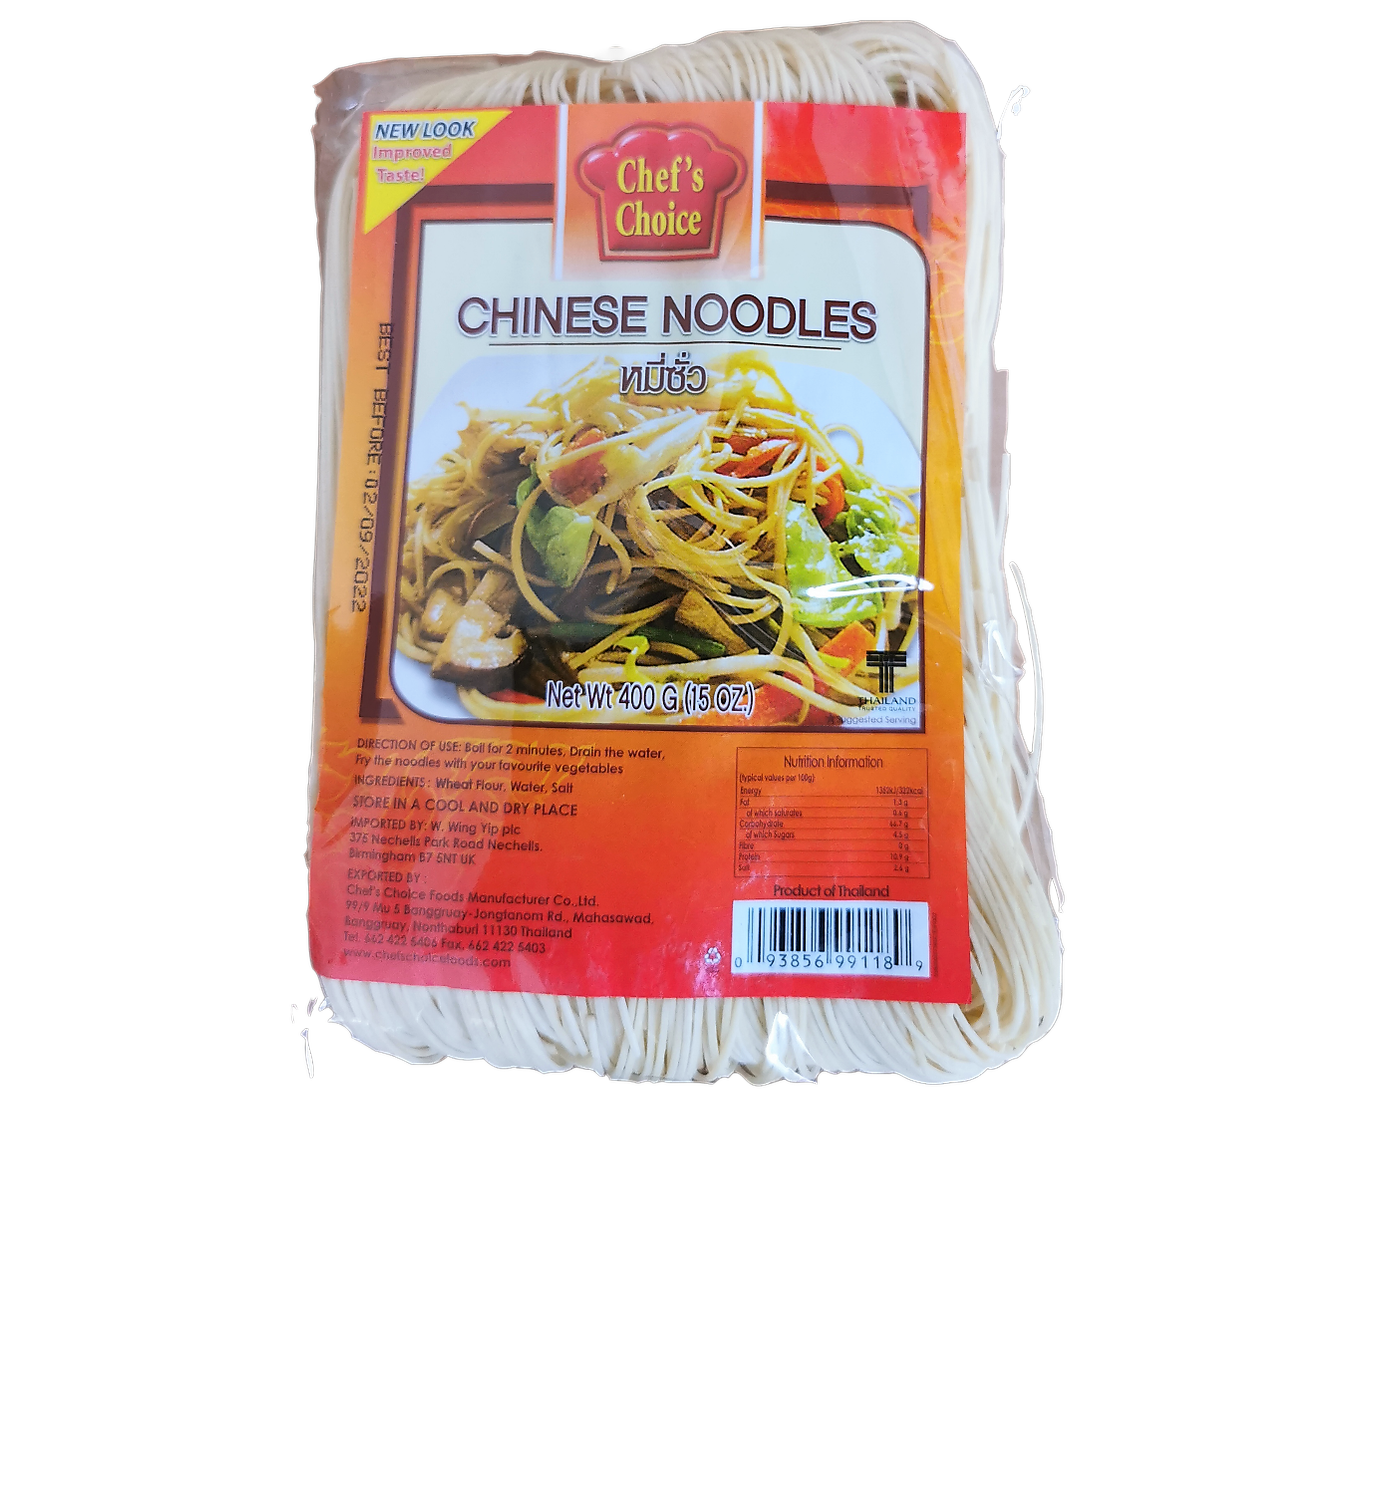 Chefs Choice Chinese Noodles